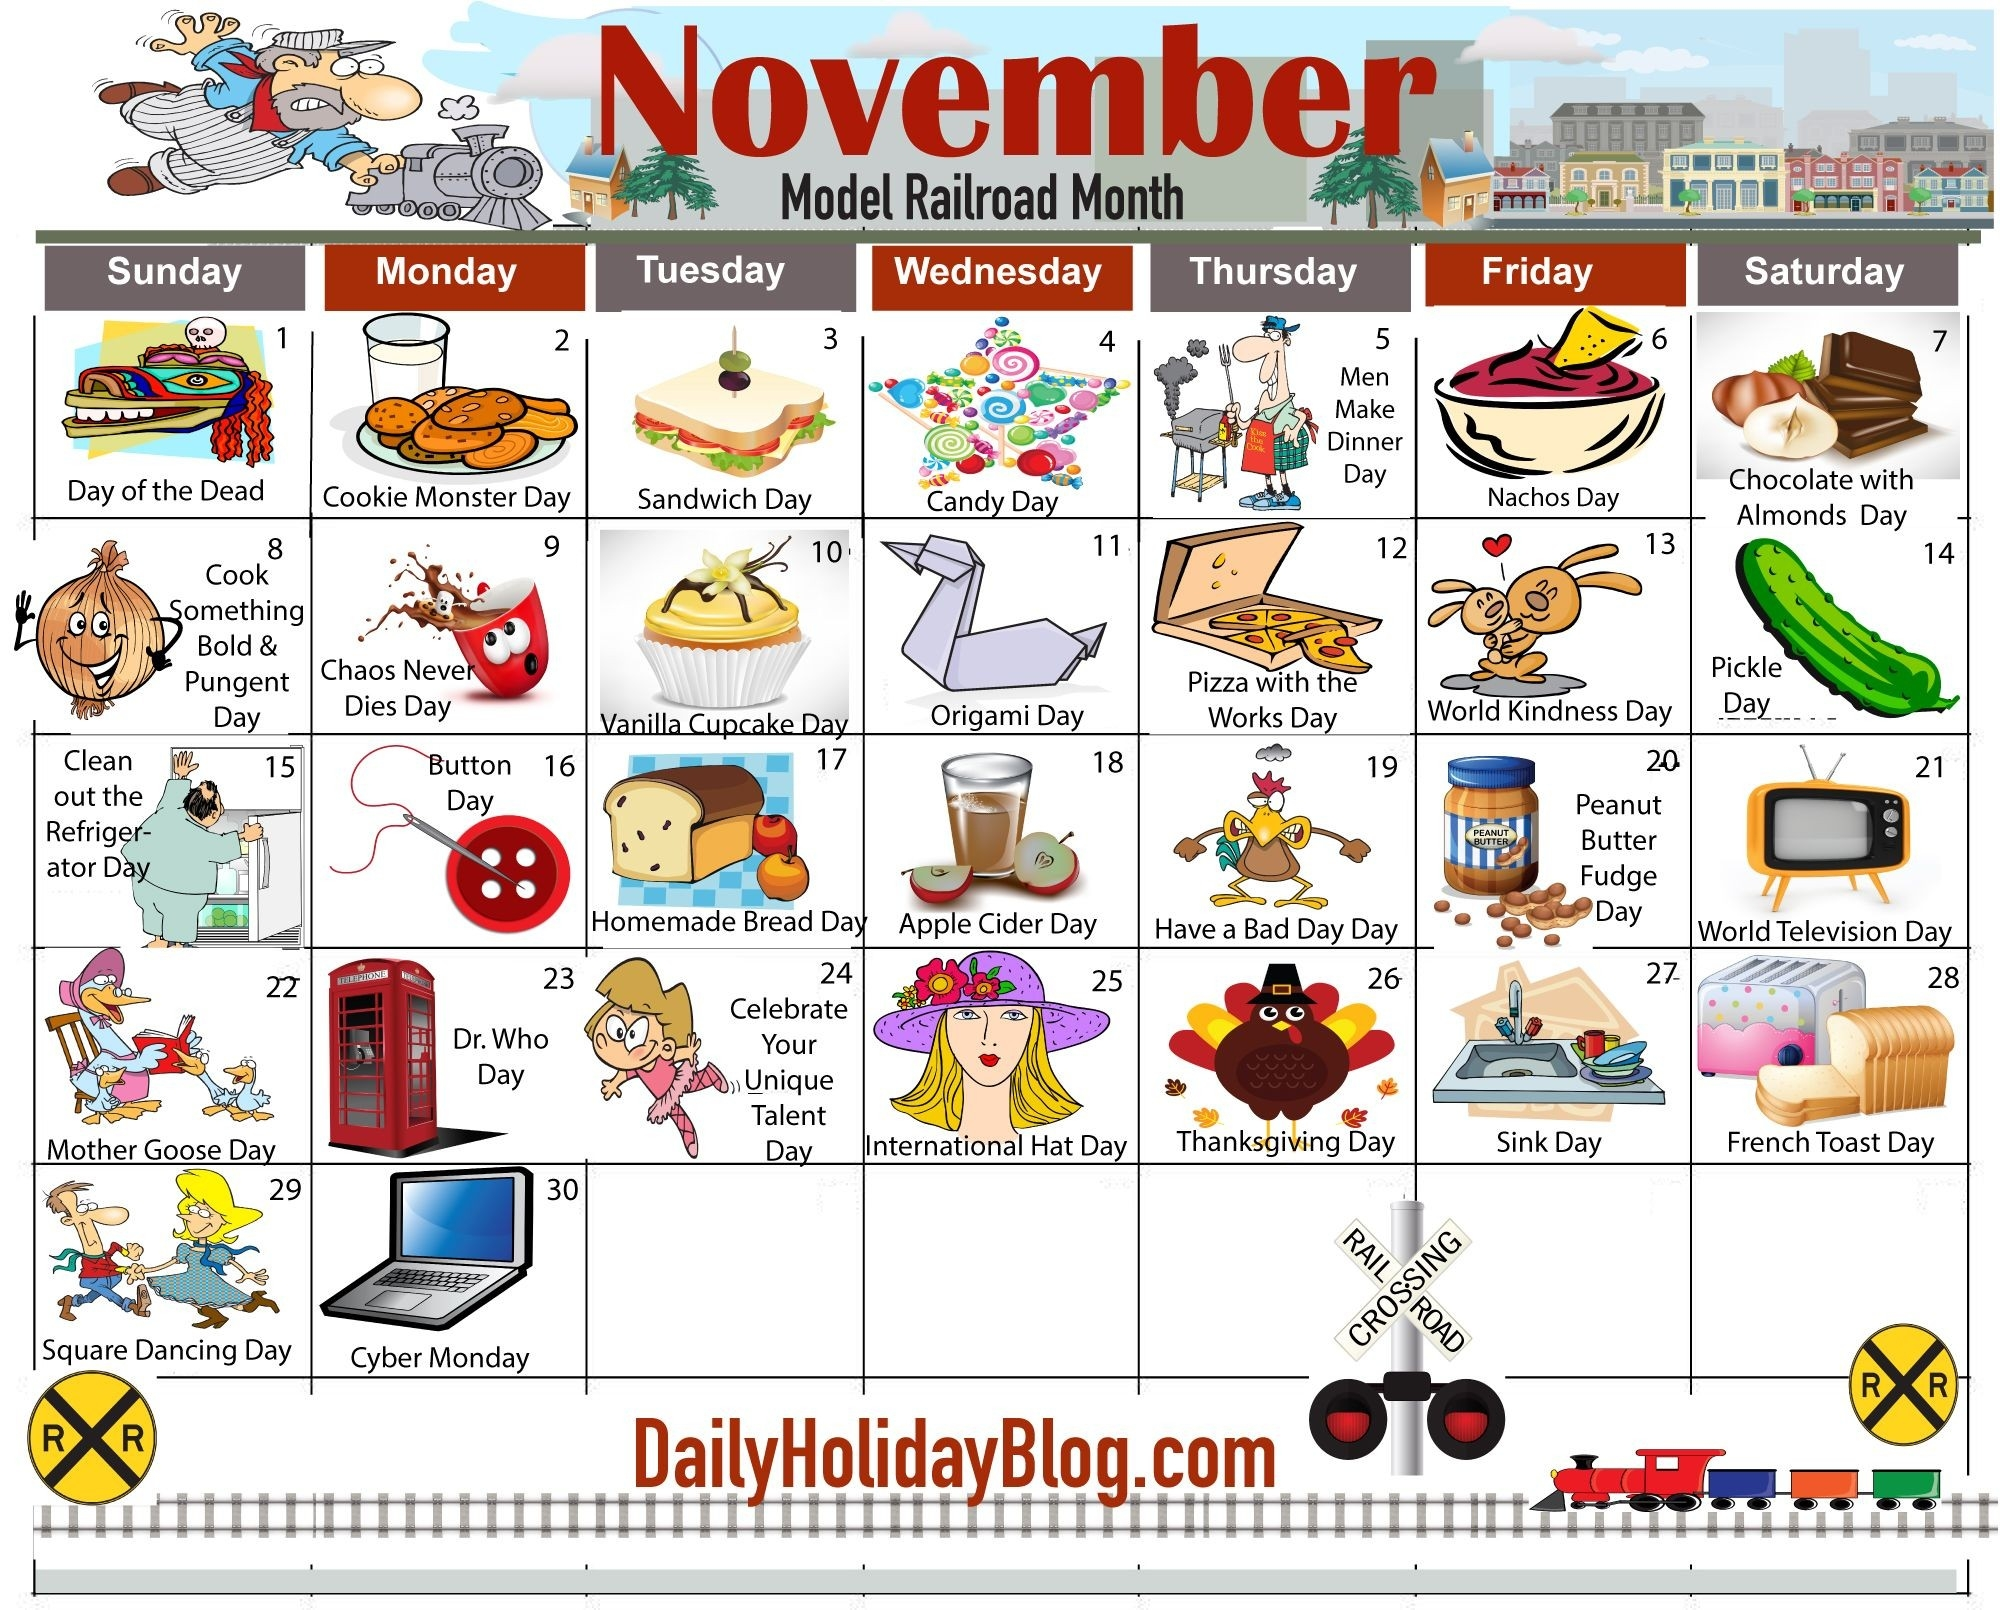 November Daily Holiday Calendar | New Holidays And-Calendar Holidays Special And Wacky Days